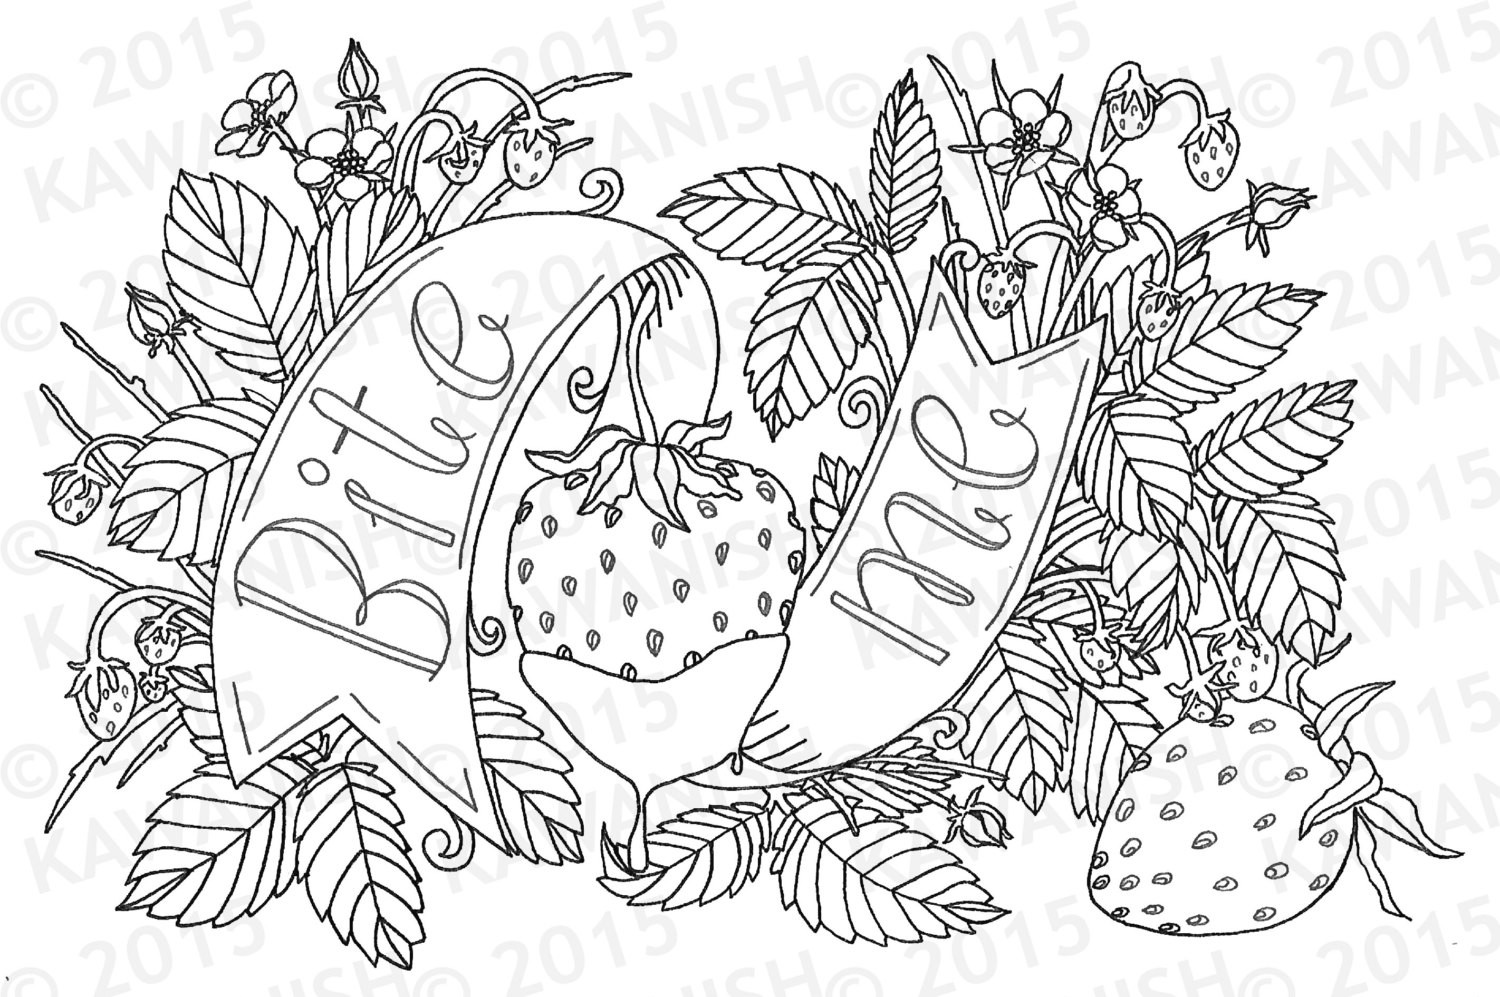 Adult Coloring Books Sex  bite me strawberry adult coloring page wall art t funny